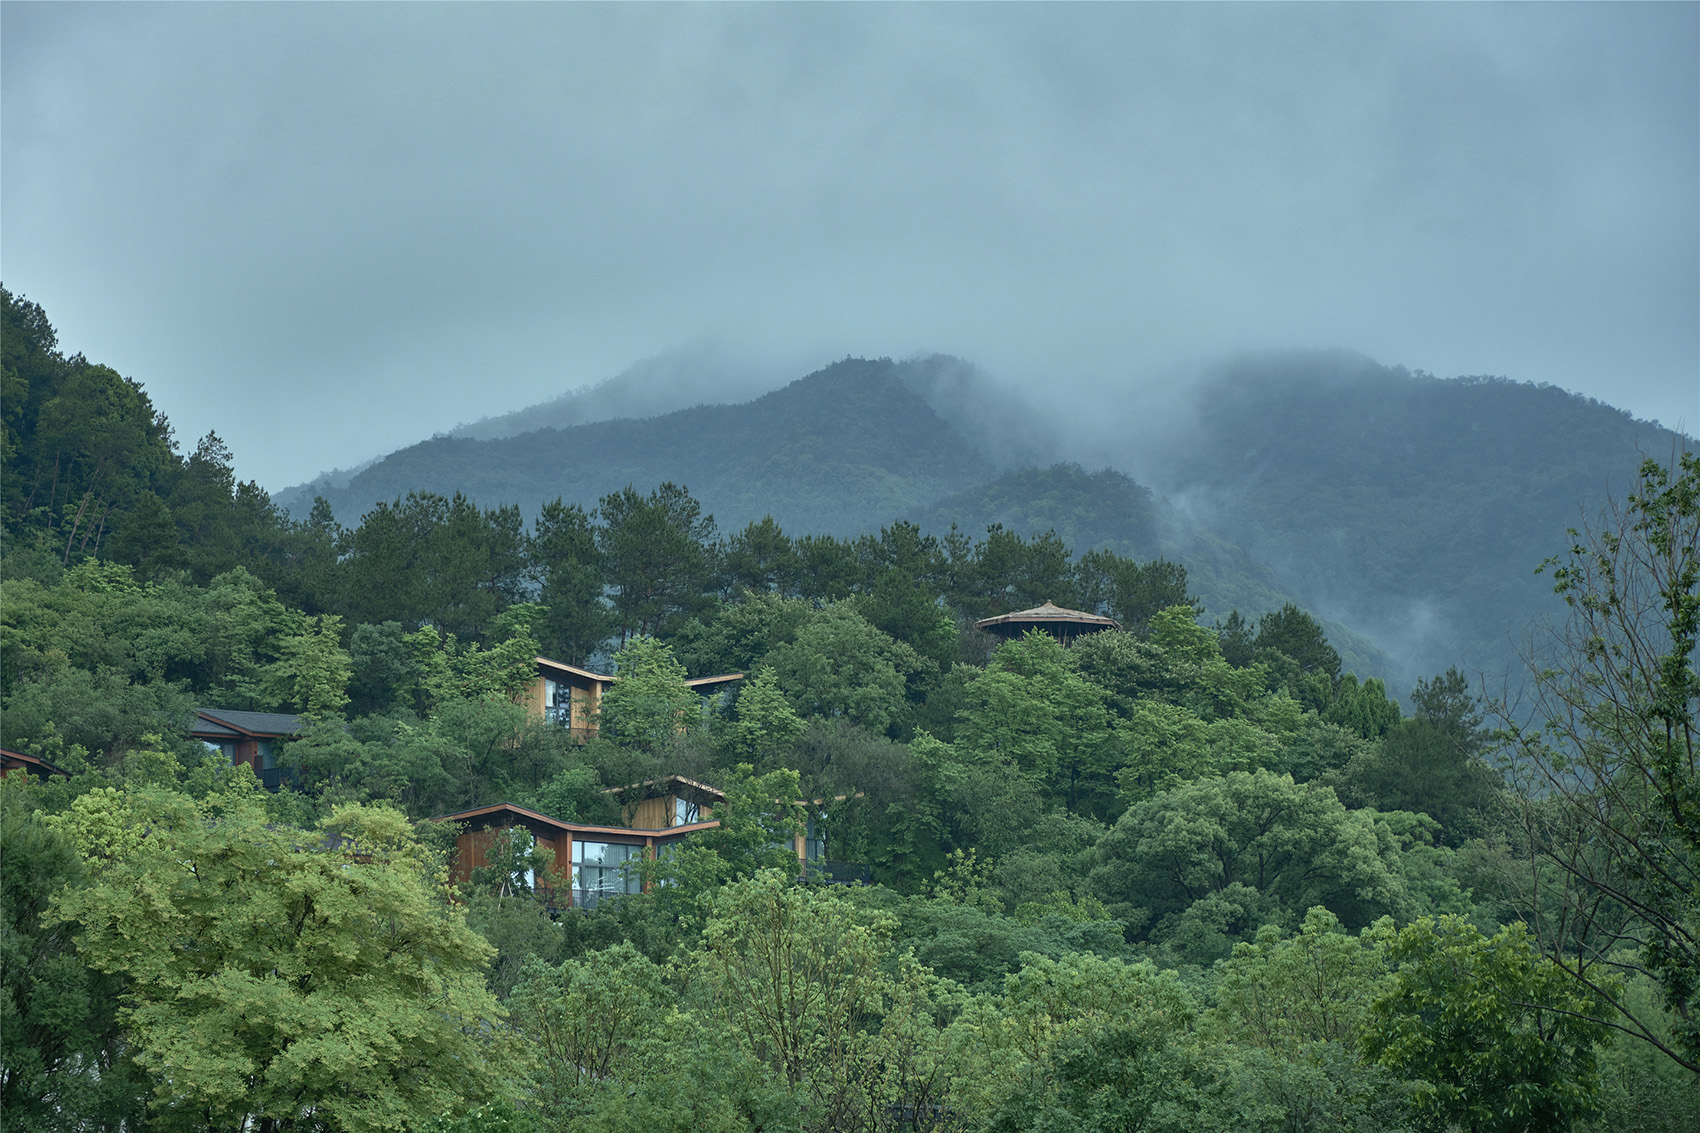 012-fuchun-mountain-resort-china-by-the-design-institute-of-landscape-architecture-china-academy-of-art.jpg